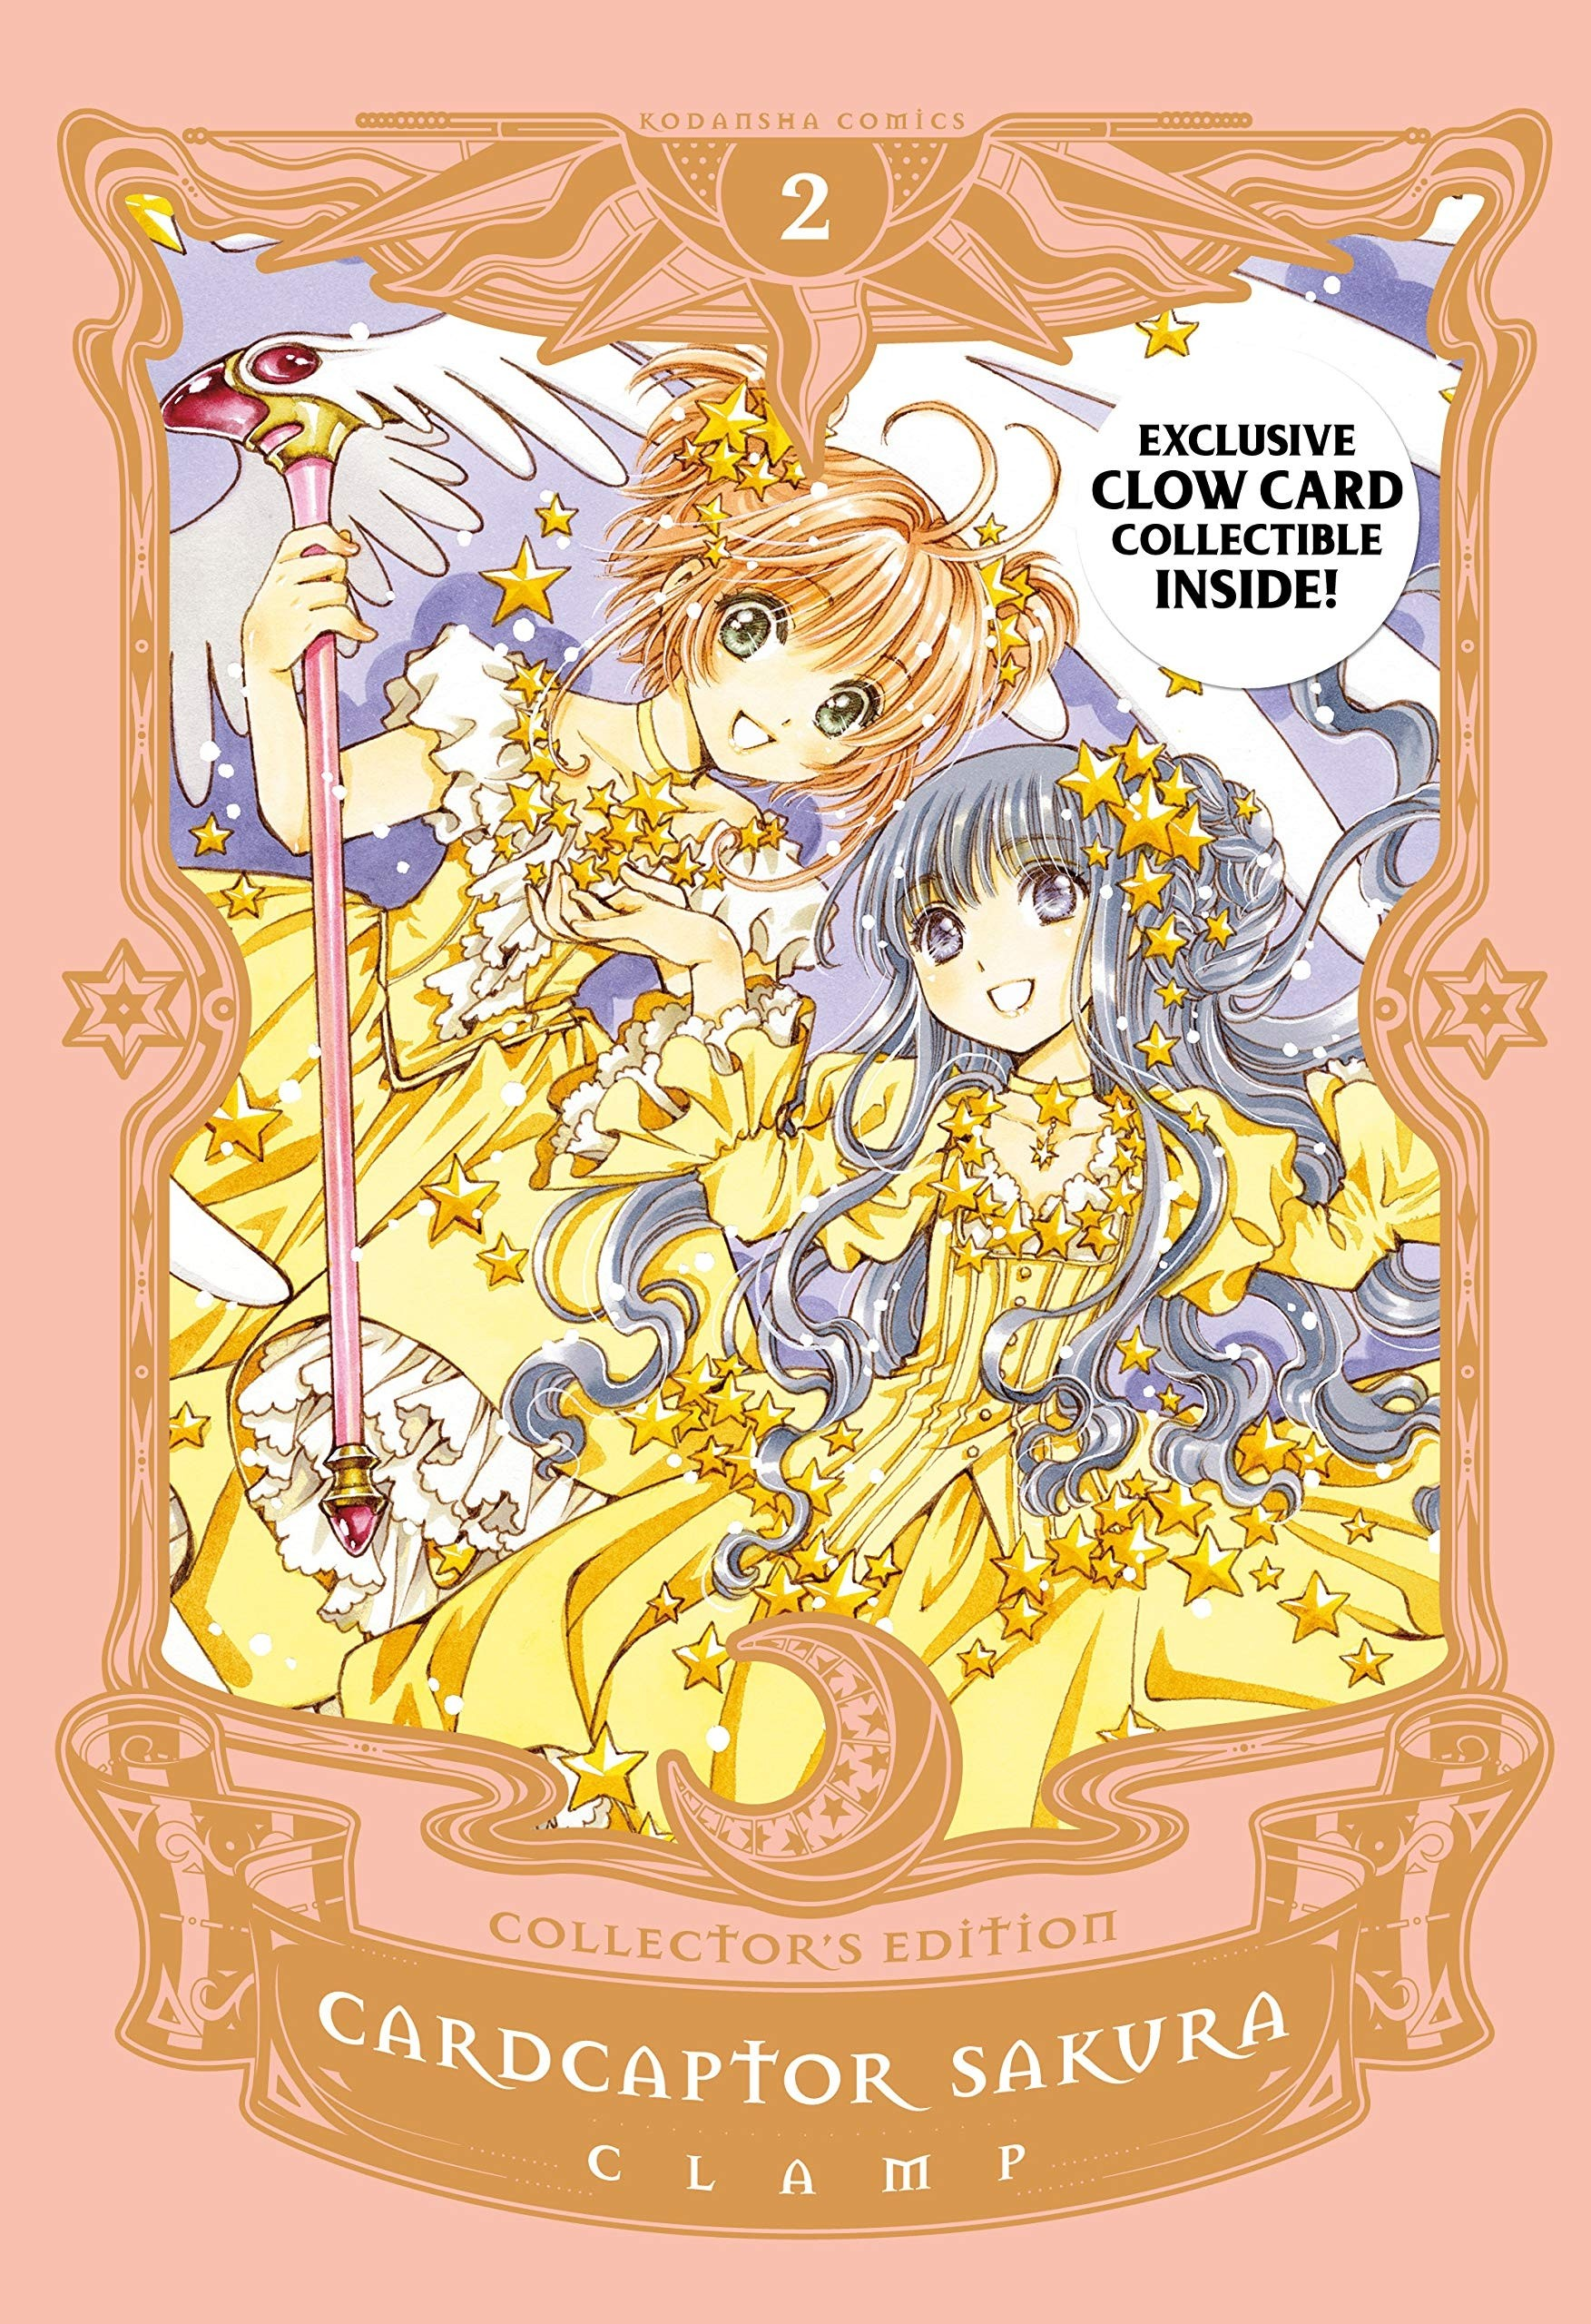 Cardcaptor Sakura Collector's Edition, Vol. 02